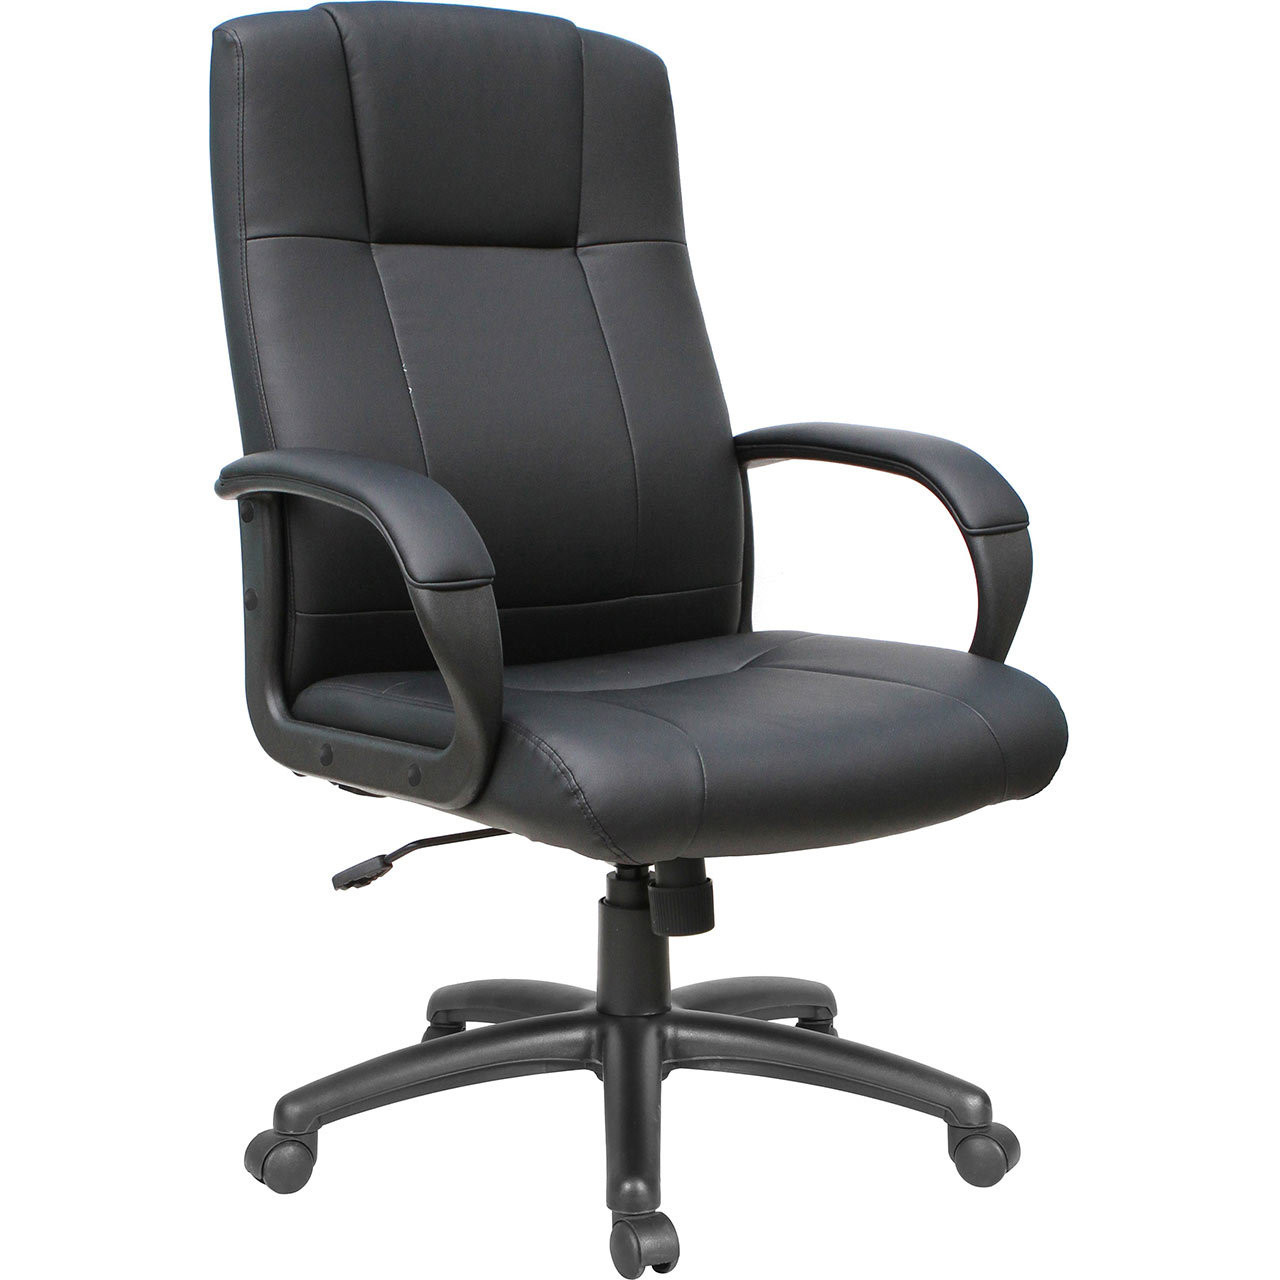 Express Furniture Executive 300 Lbs Capacity High Back Office Chair In Black Bifma Dealscoop Great Prices On Refurbished Electronics And Office Furniture